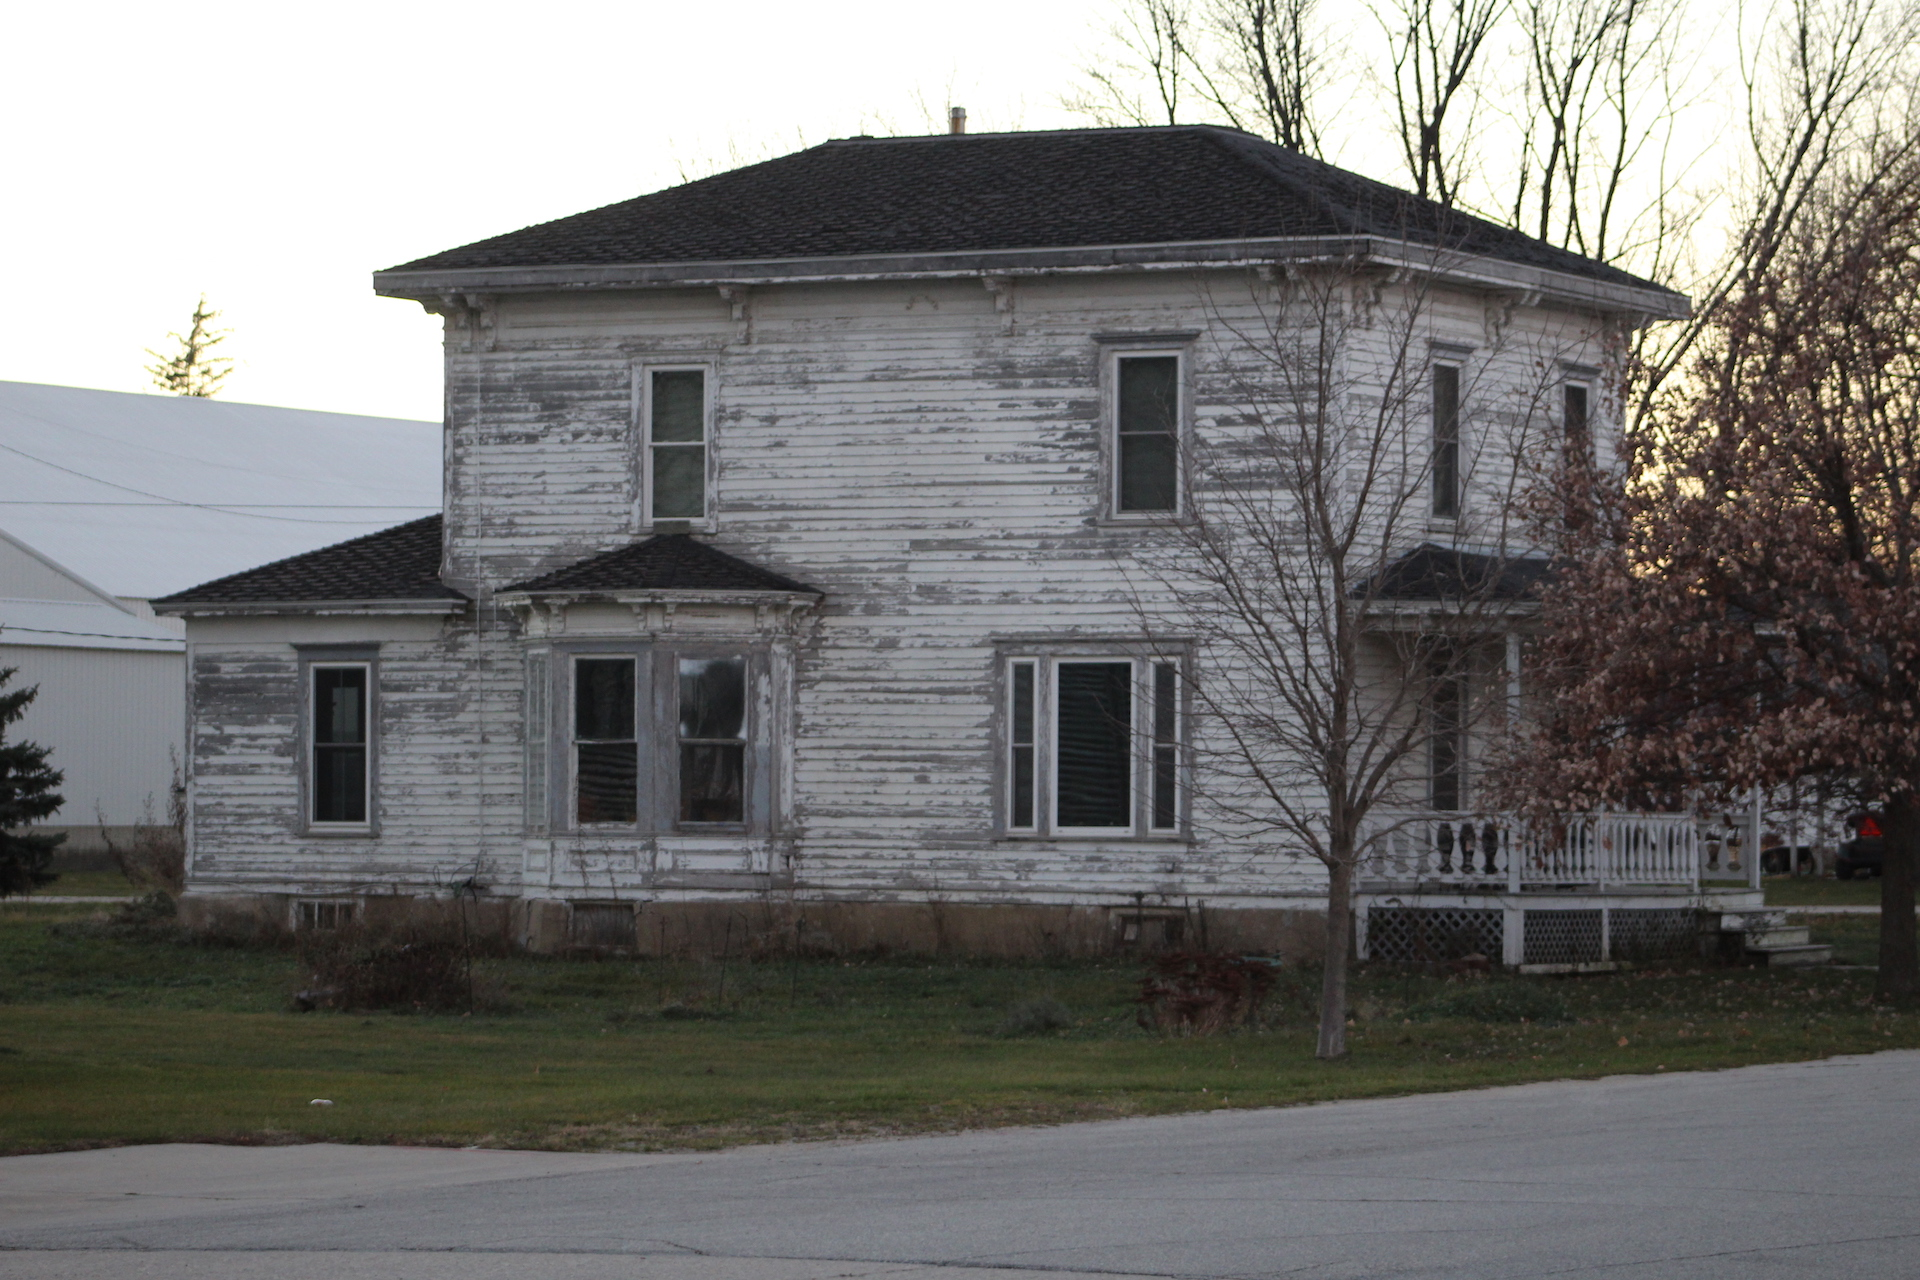 A beaten down house in Lime Springs, Iowa. Photo by Sabrina Johnkins.